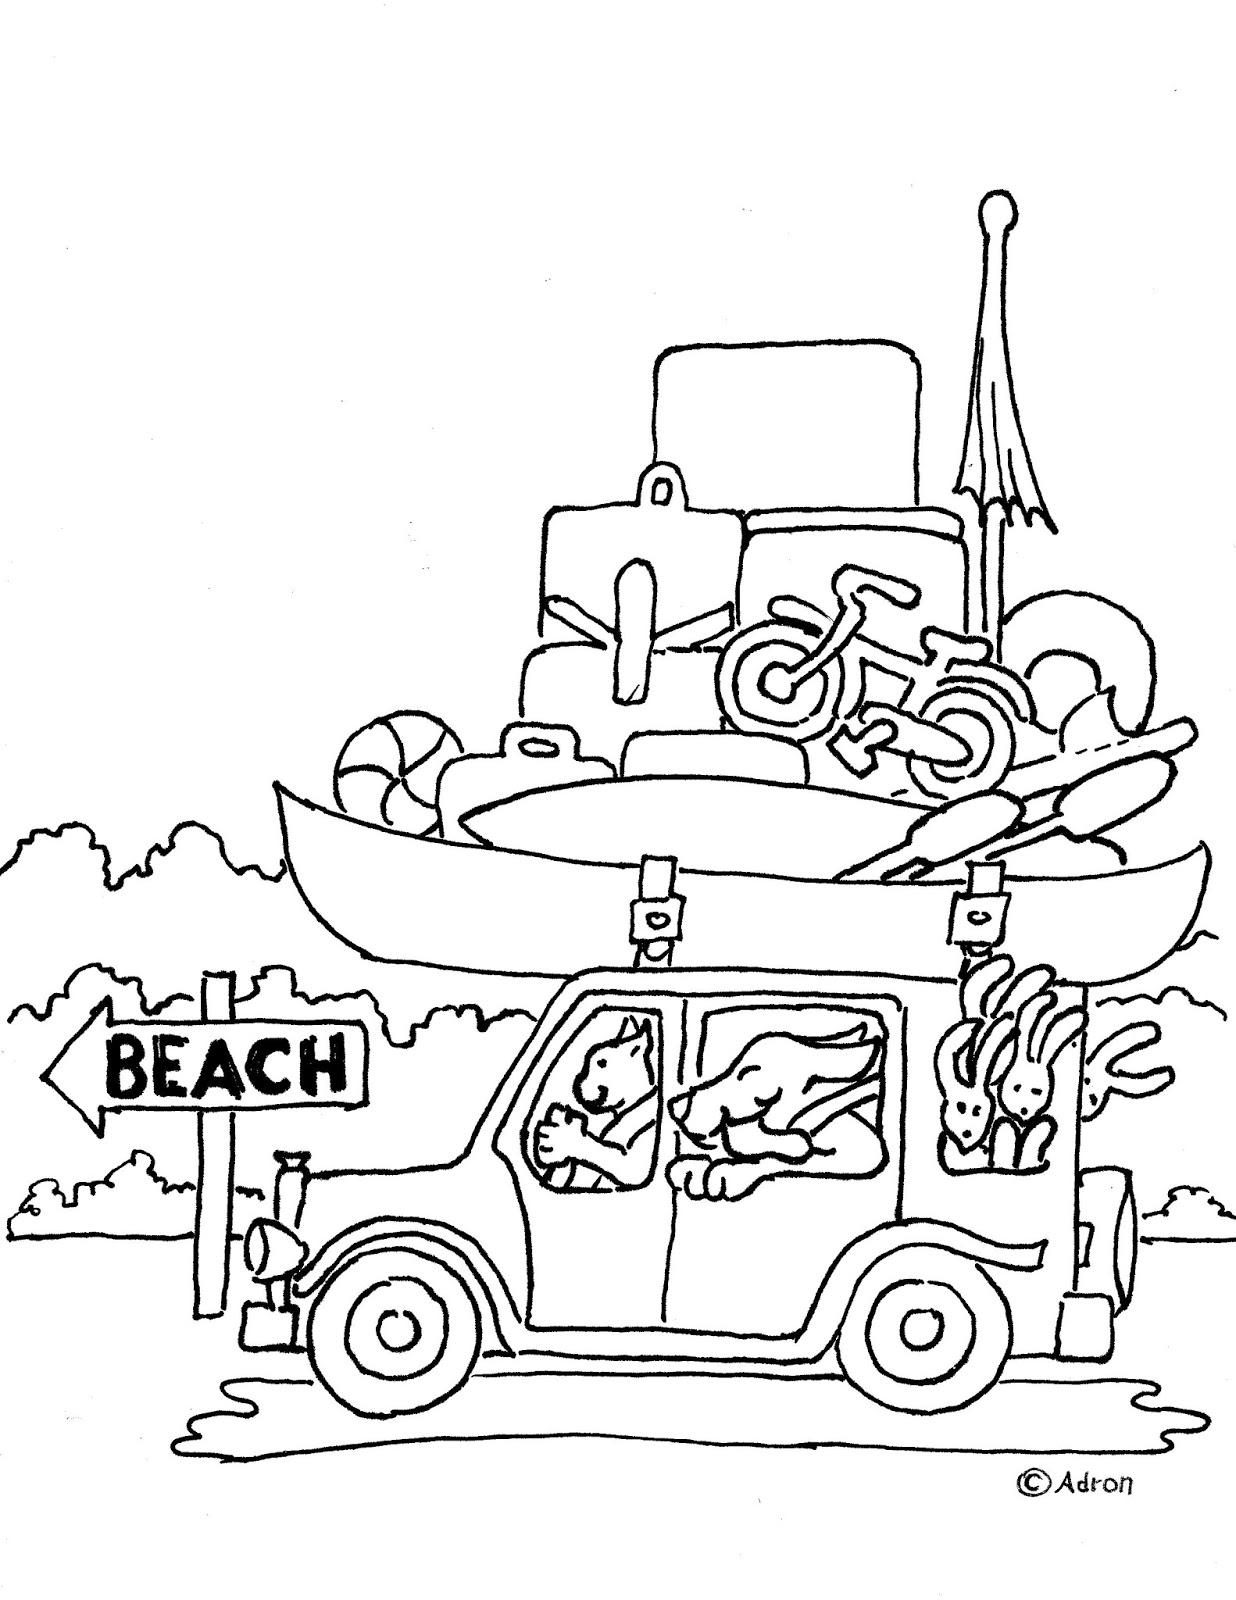 coloring pages for kids by mr adron animal friends drive to the